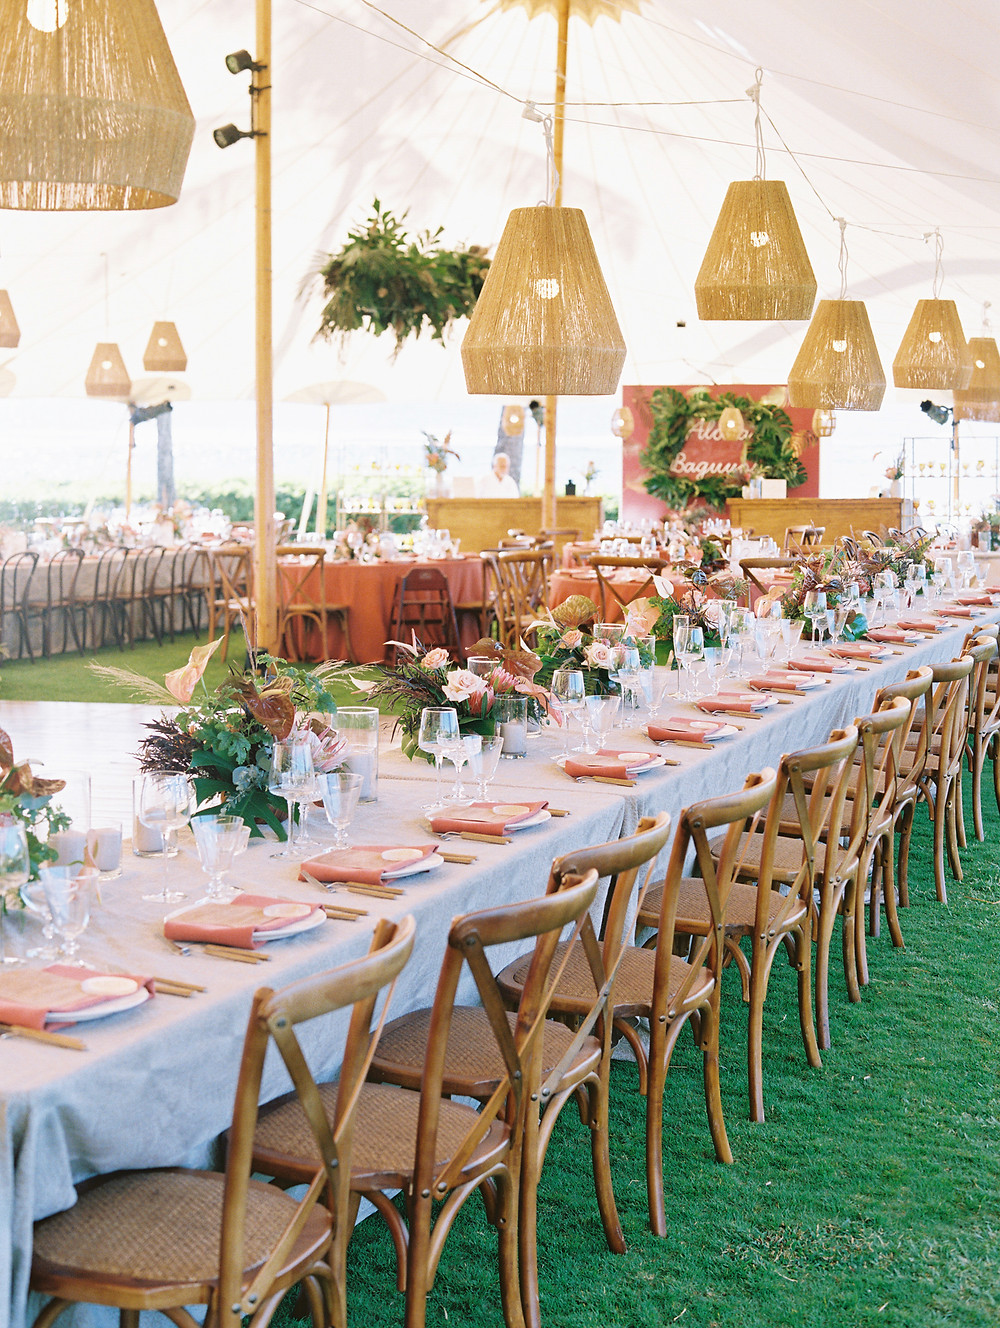 Maui Sailcloth Tent wedding reception with hanging rattan pendant lights